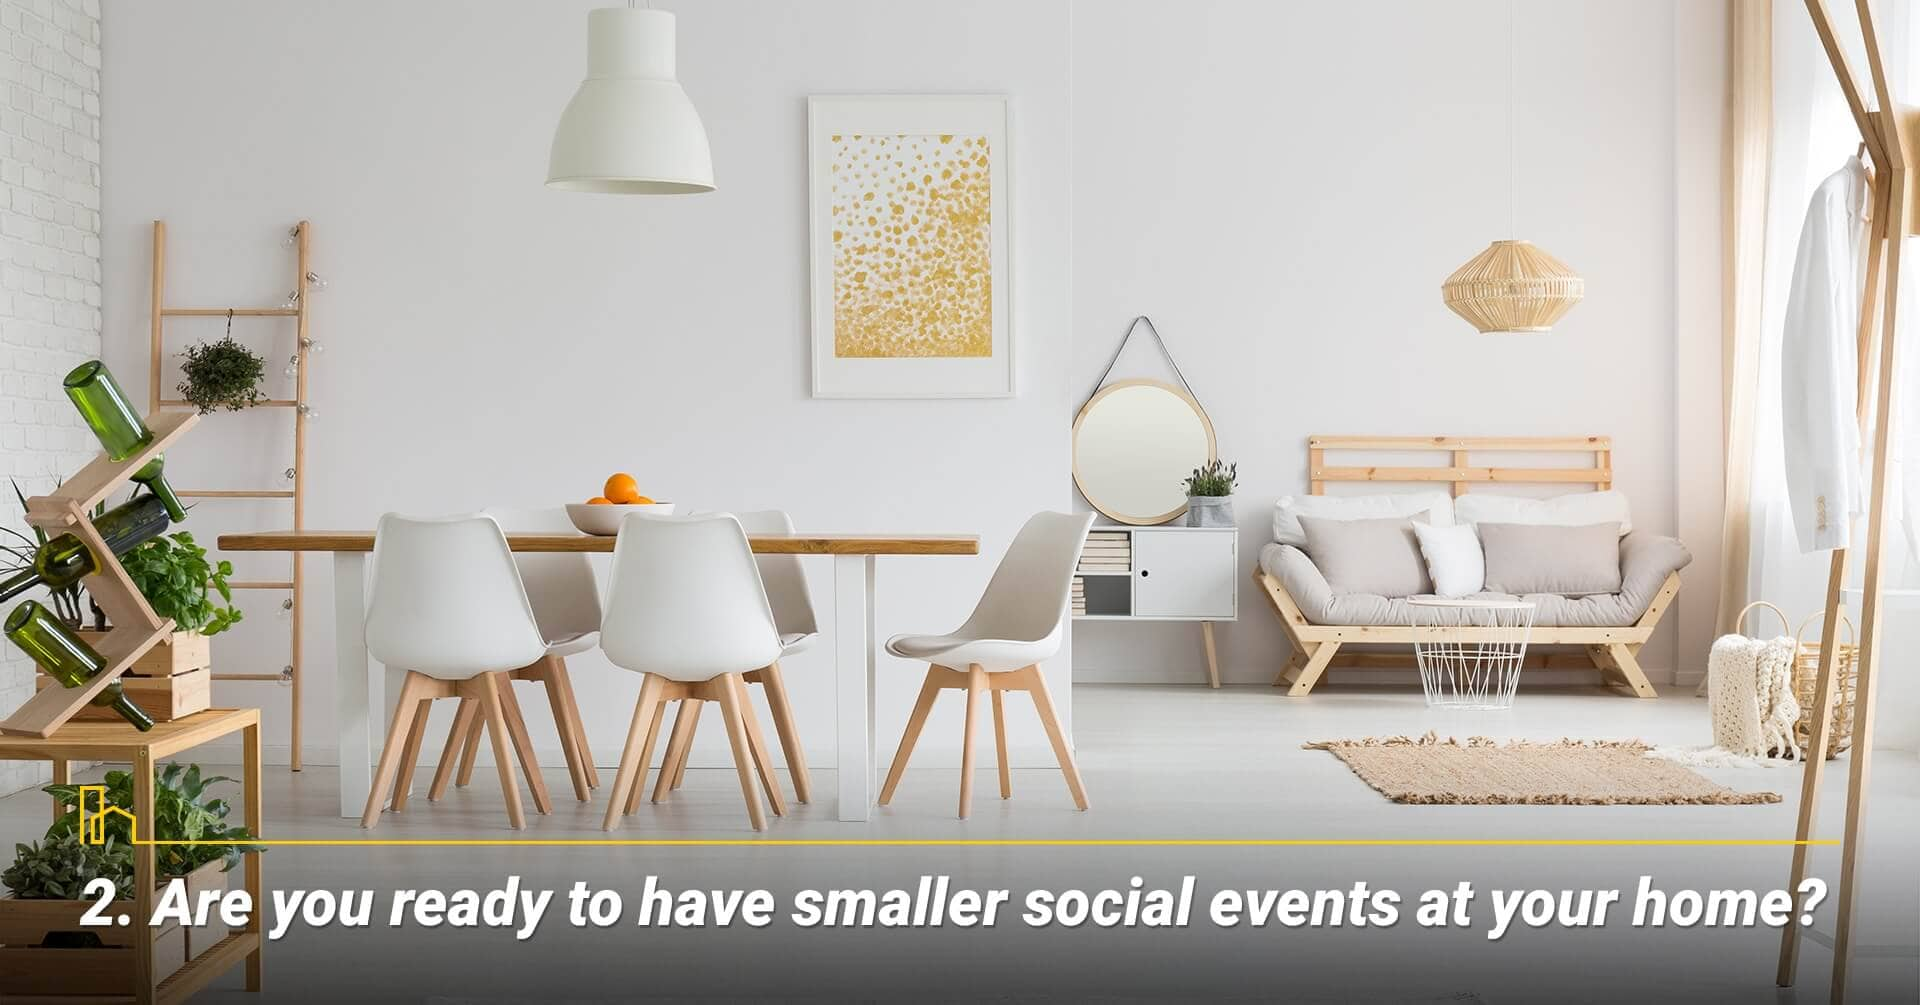 Are you ready to have smaller social events at your home?